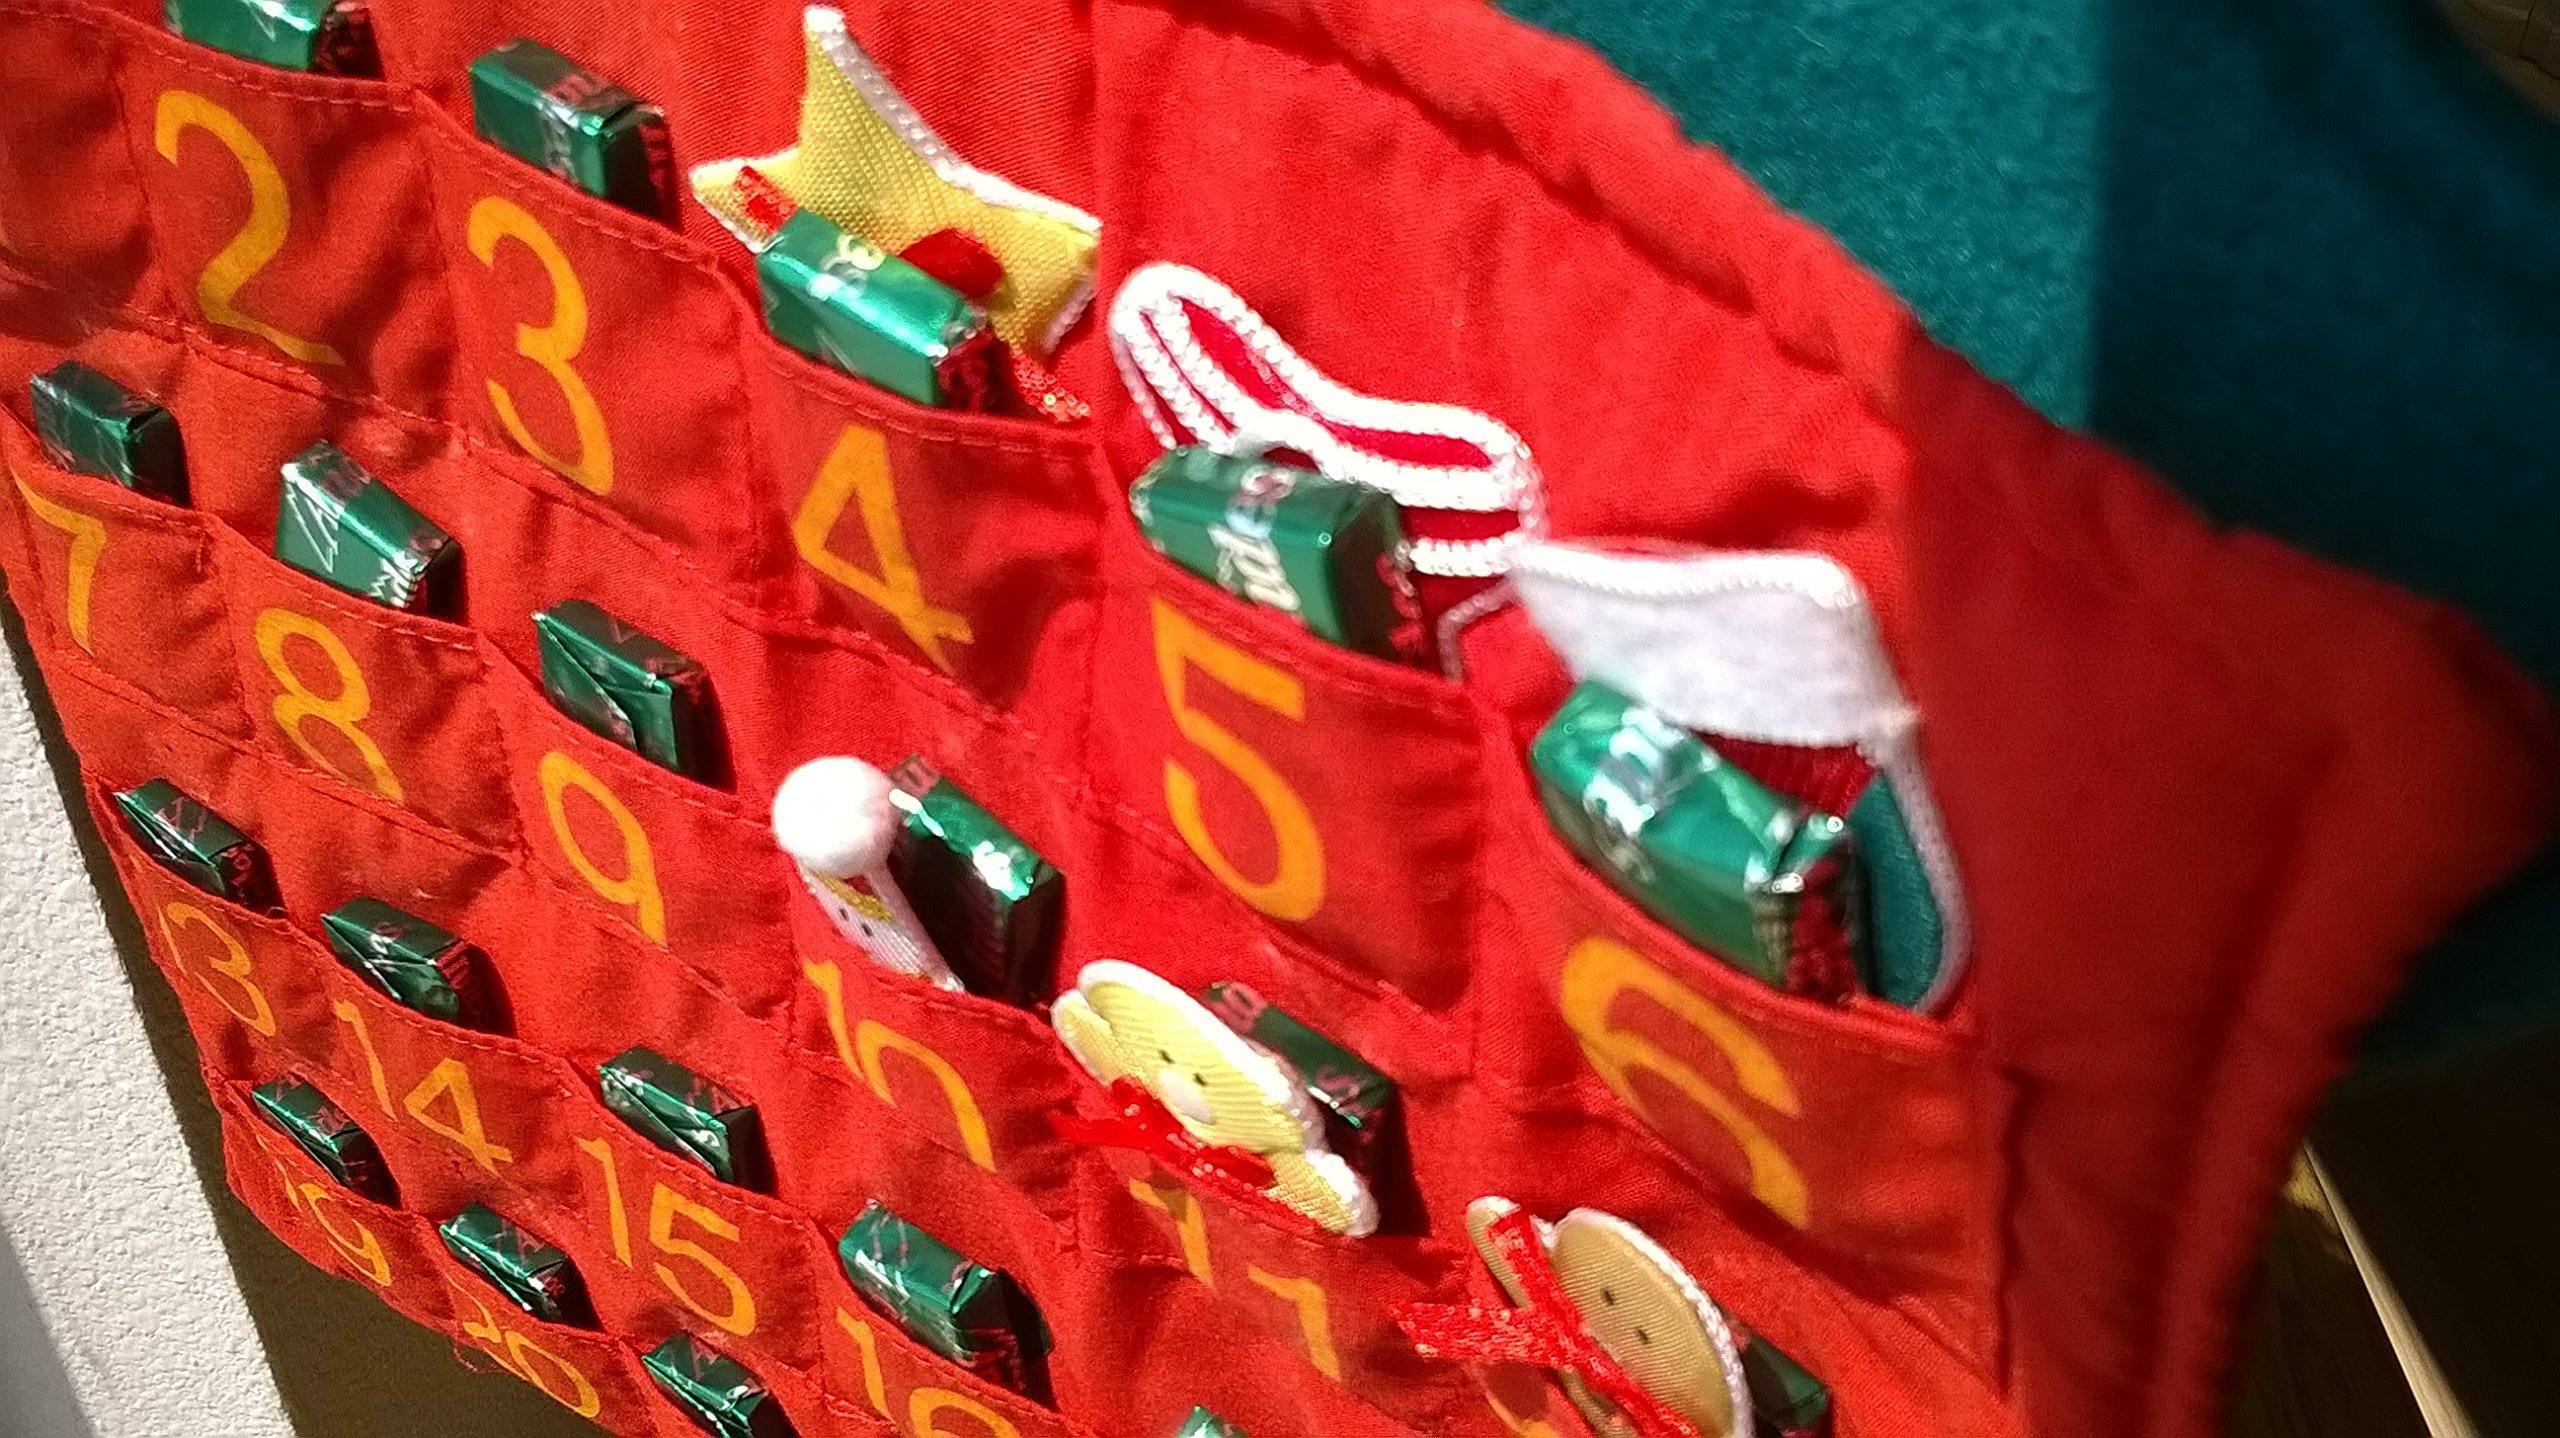 Vintage Advent Calendar ~ Countdown the Days to Christmas ~ Traditional Advent Calendar with Pockets for Chocolate ~ Handmade Classic Christmas Tree ~ Advent Calendar for Elderly or Rest Home Gift ~ JUMBO SIZED 3 FEET LONG ~ Completes Christmas Nativity S